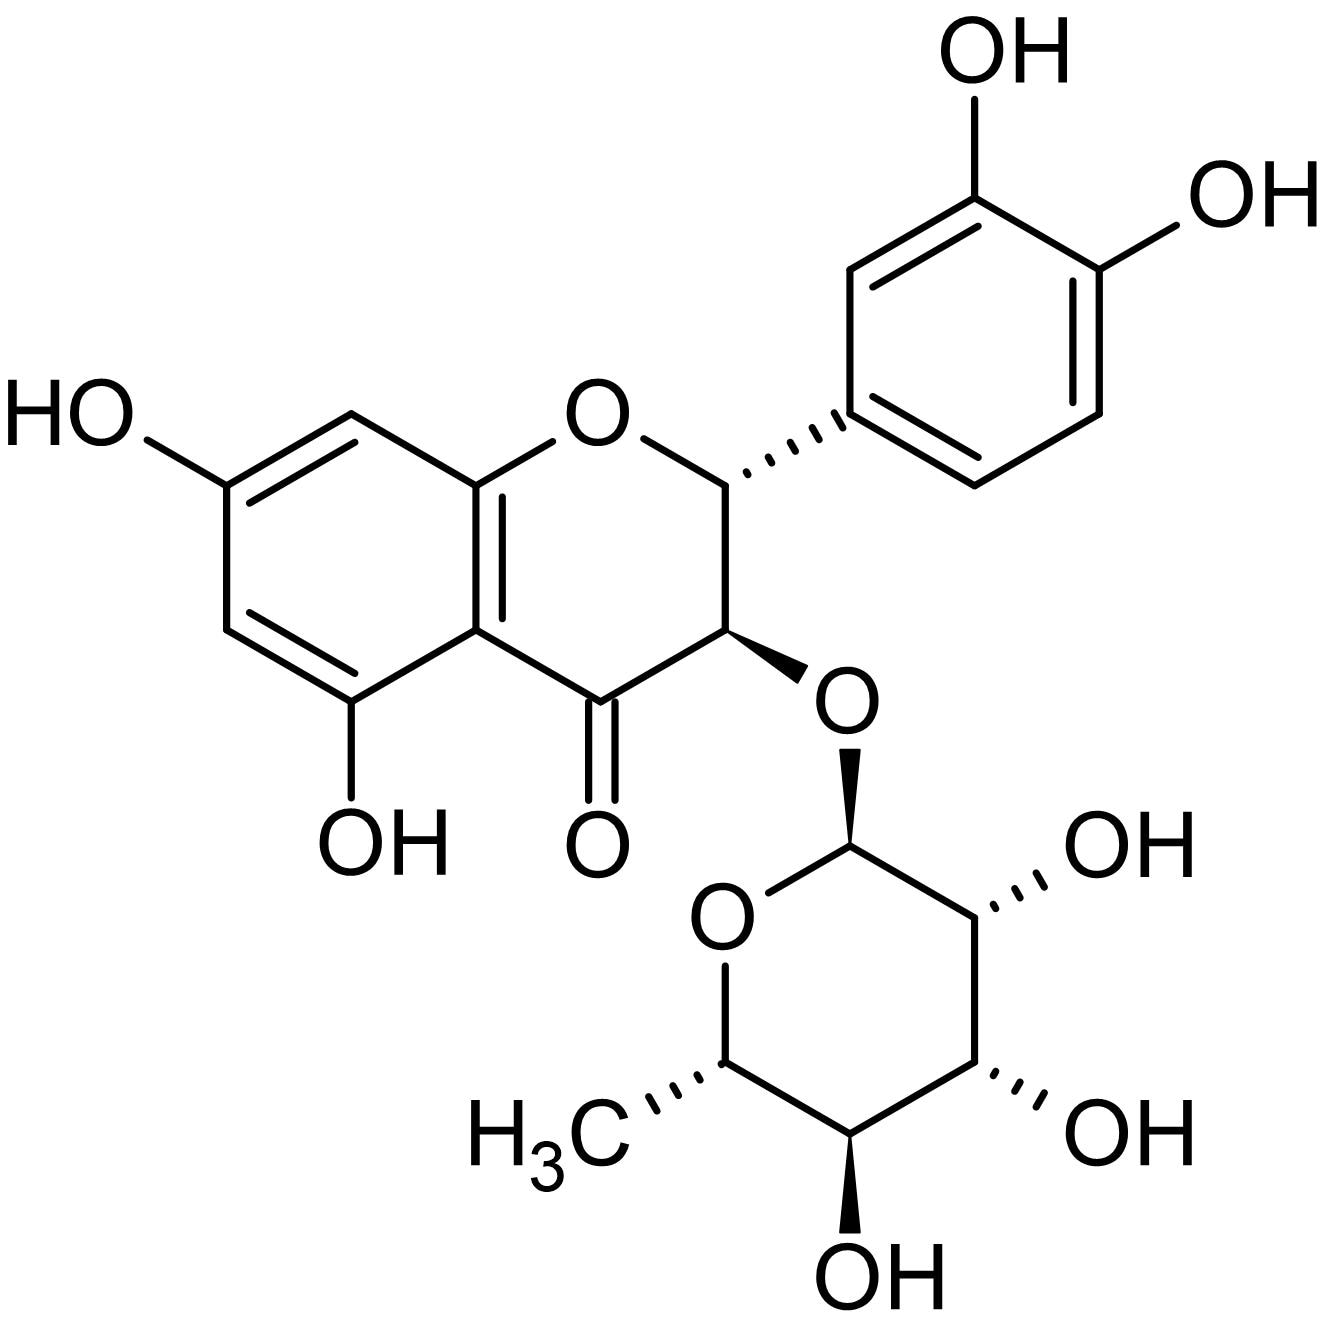 Chemical Structure - Astilbin, flavonoid found in plants (ab143575)